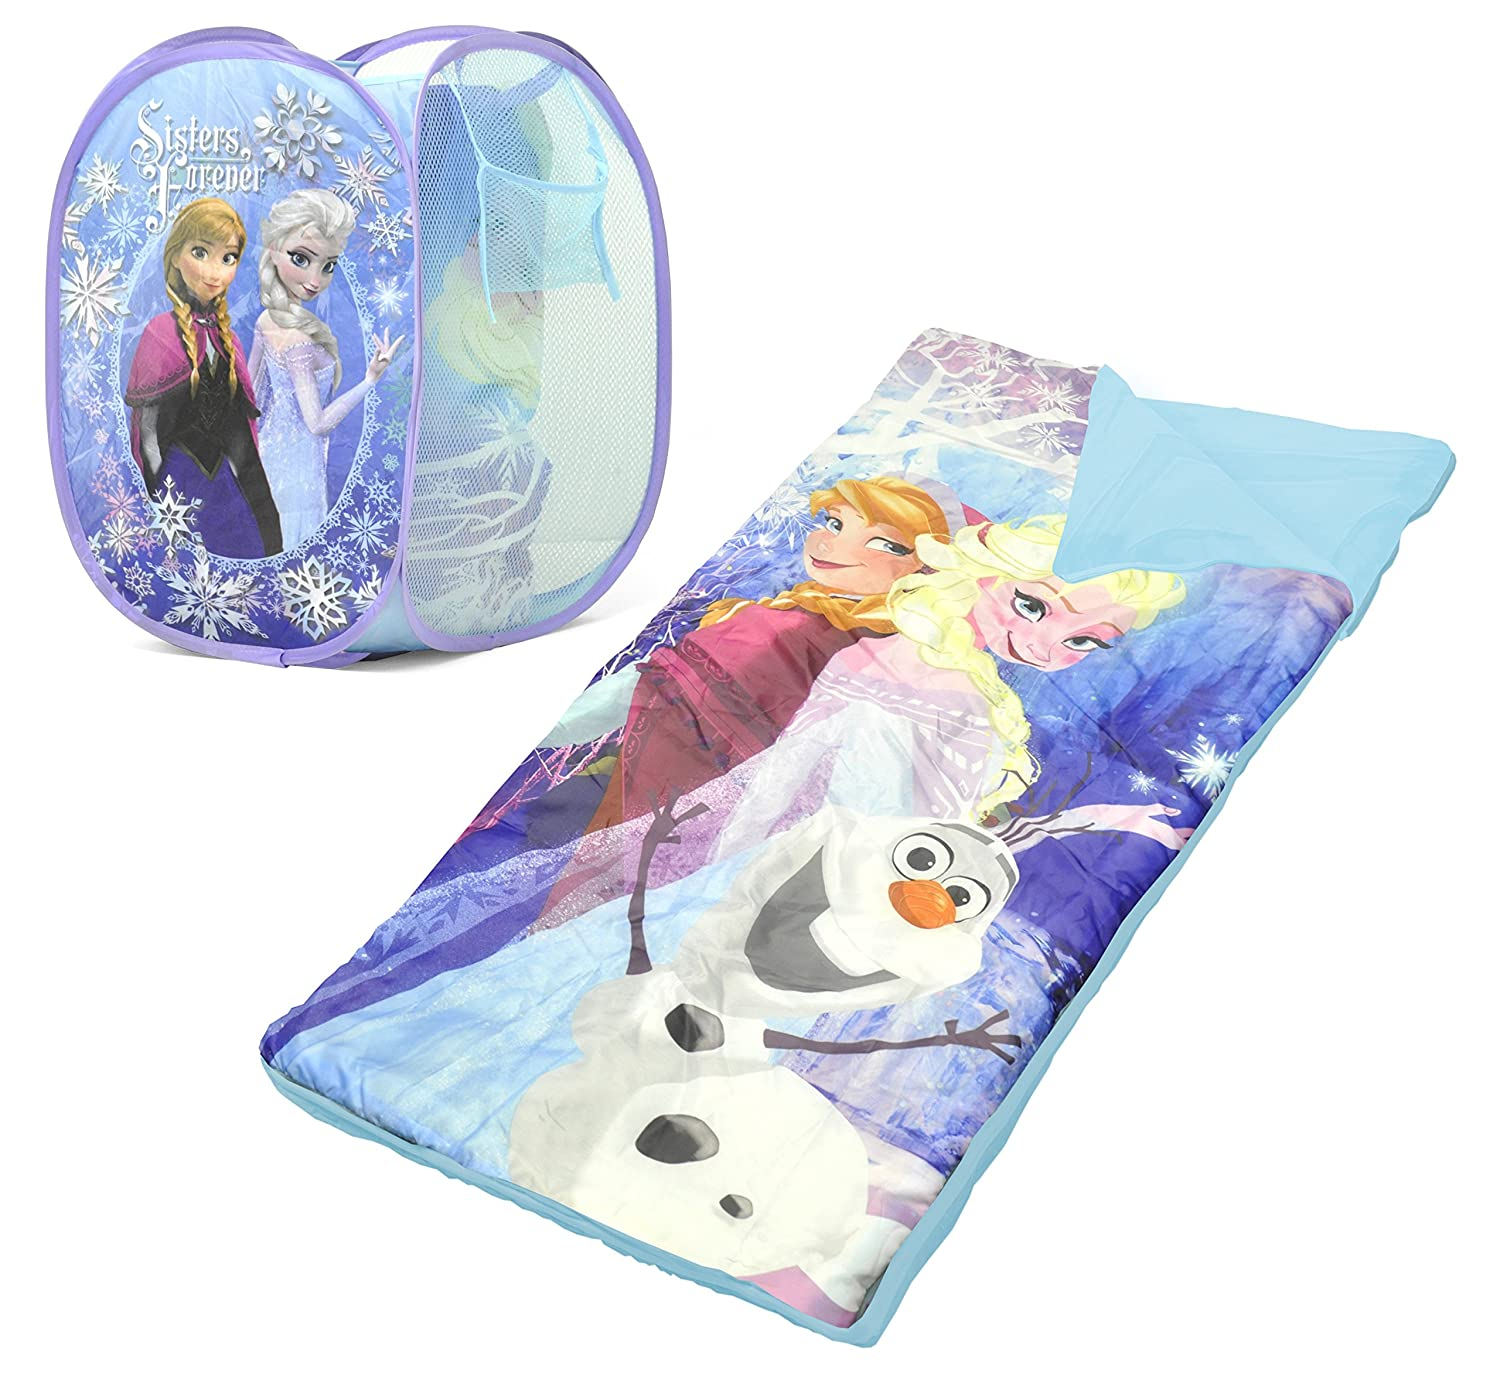 Disney Frozen Sleeping Bag and Hamper Set Idea Nuova - LA NK318937